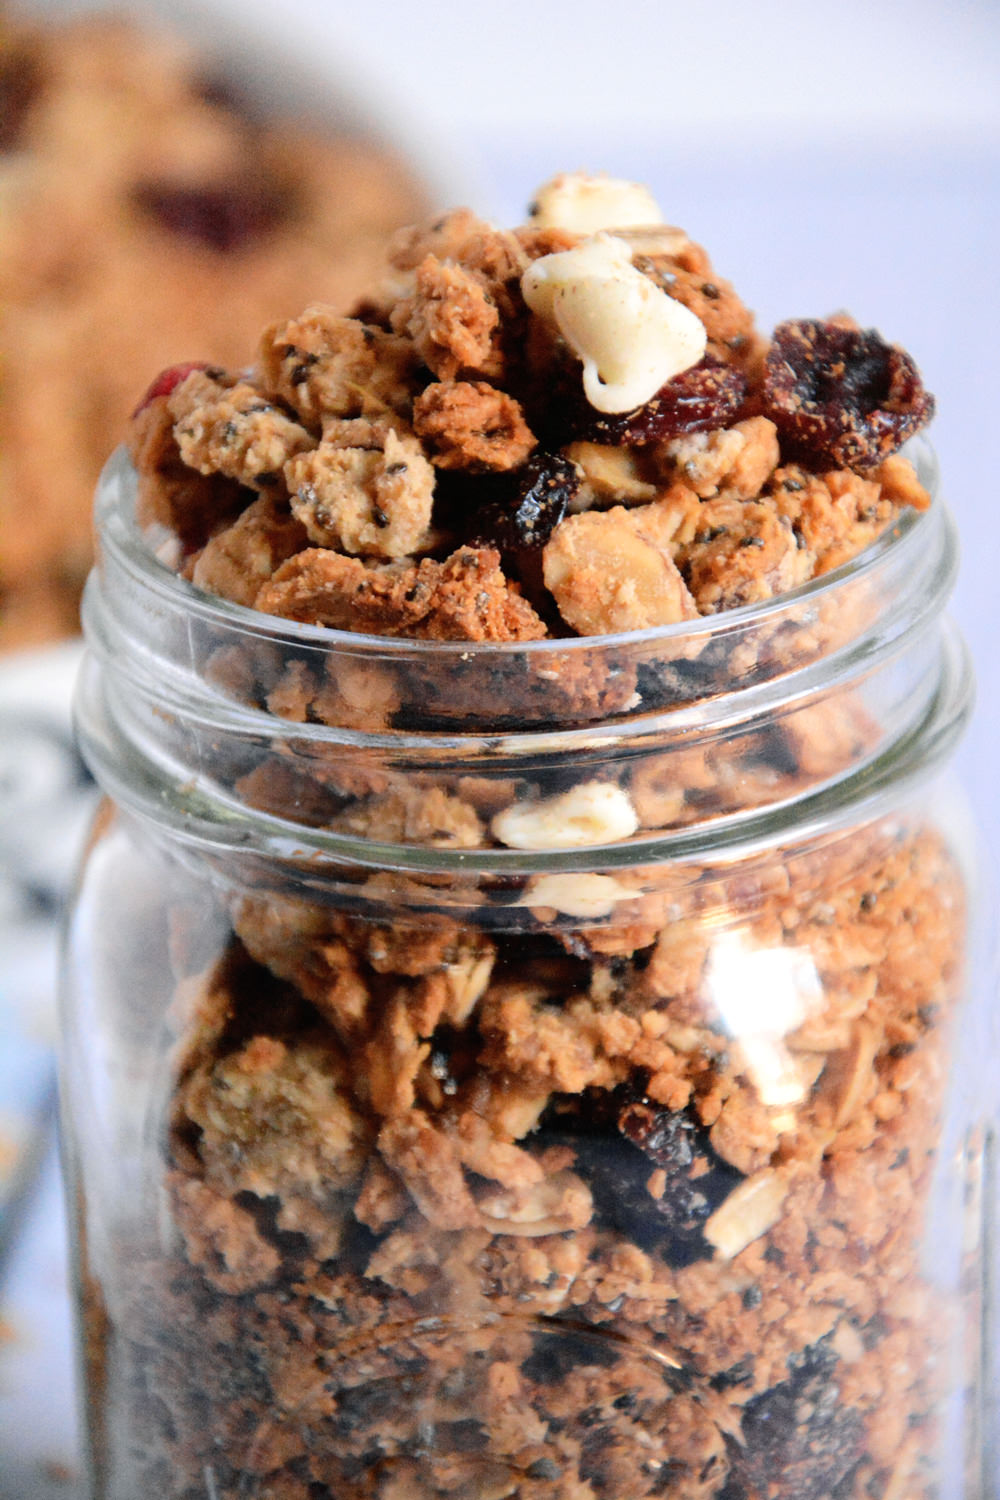 A naturally sweetened granola with tart cranberries and white chocolate morsels are the perfect snack or breakfast!